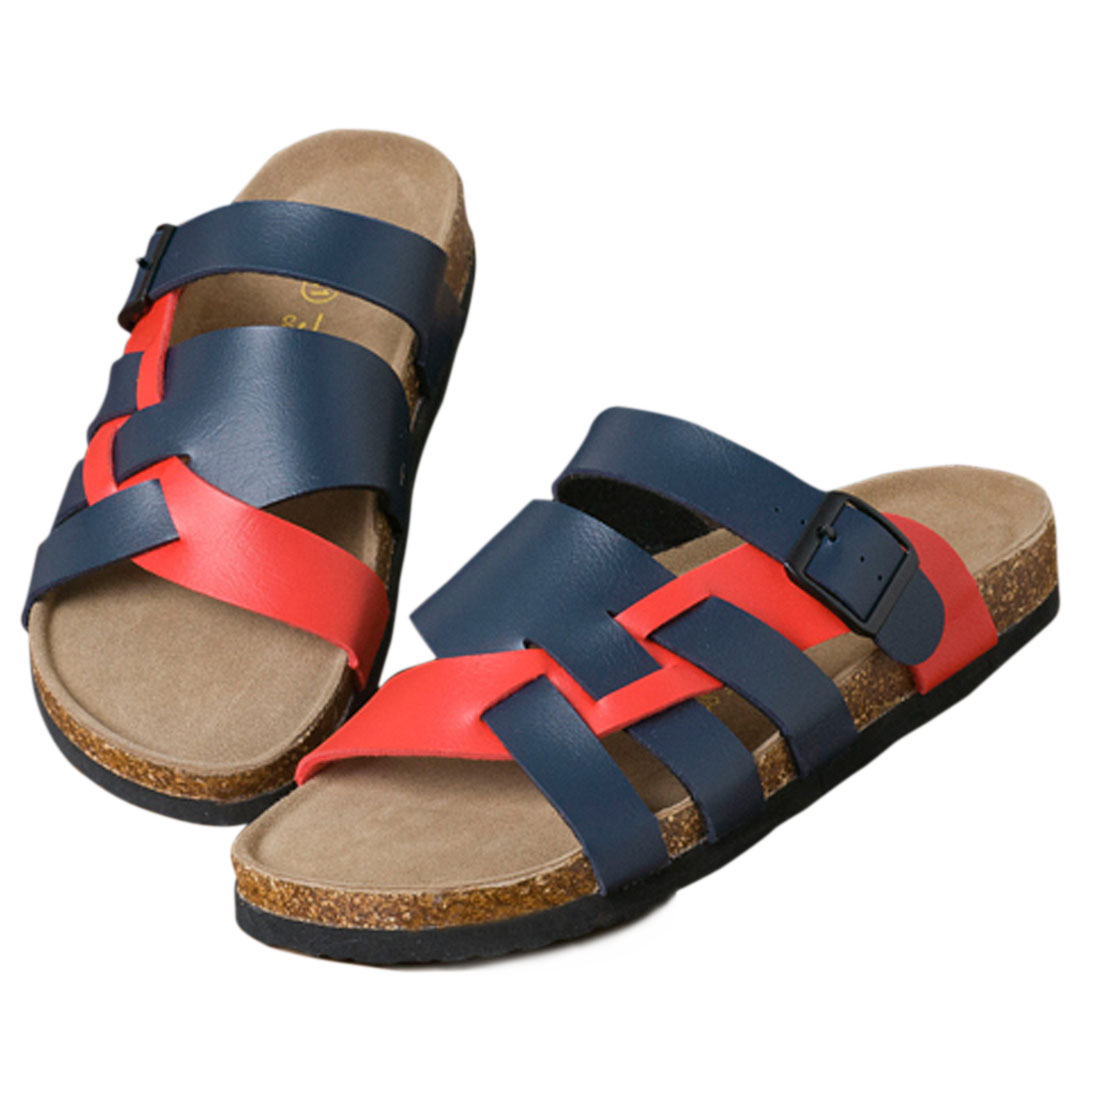 Mens Navy Blue Red Faux Leather Upper Sandals US 10